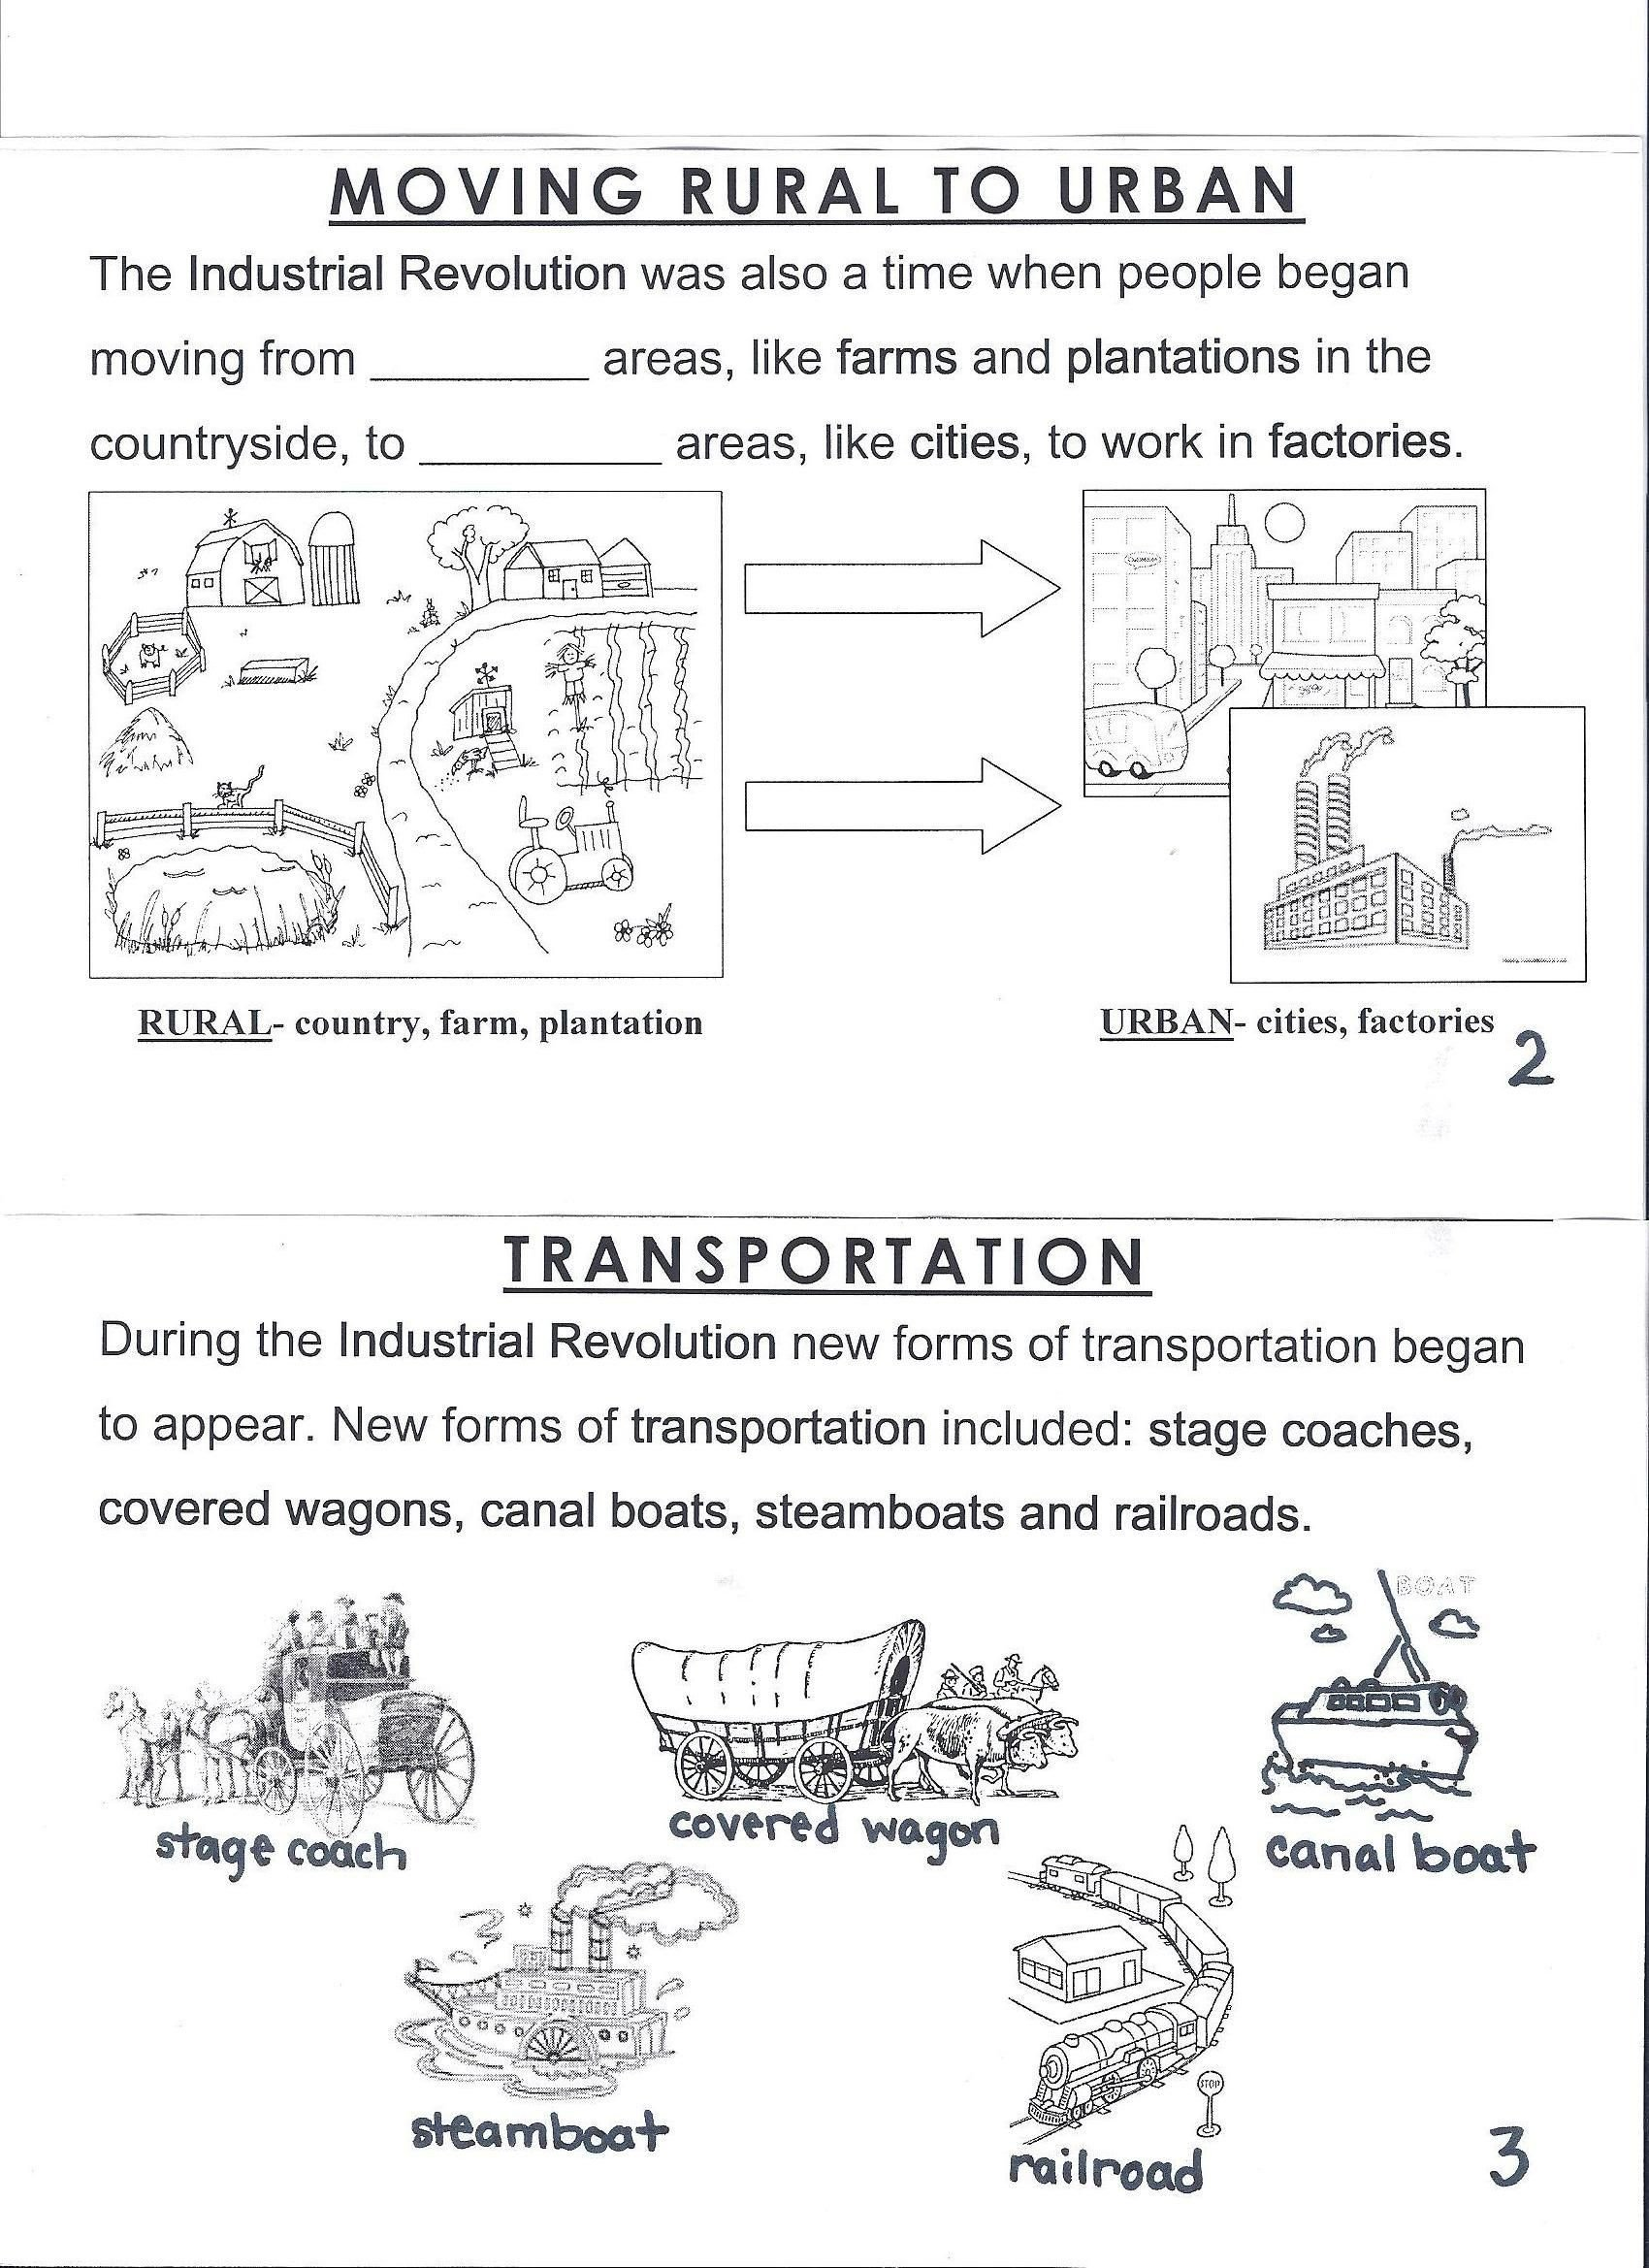 Industrial Revolution Worksheets Pdf Industrial Revolution 2 1 700—2 338 Pixels